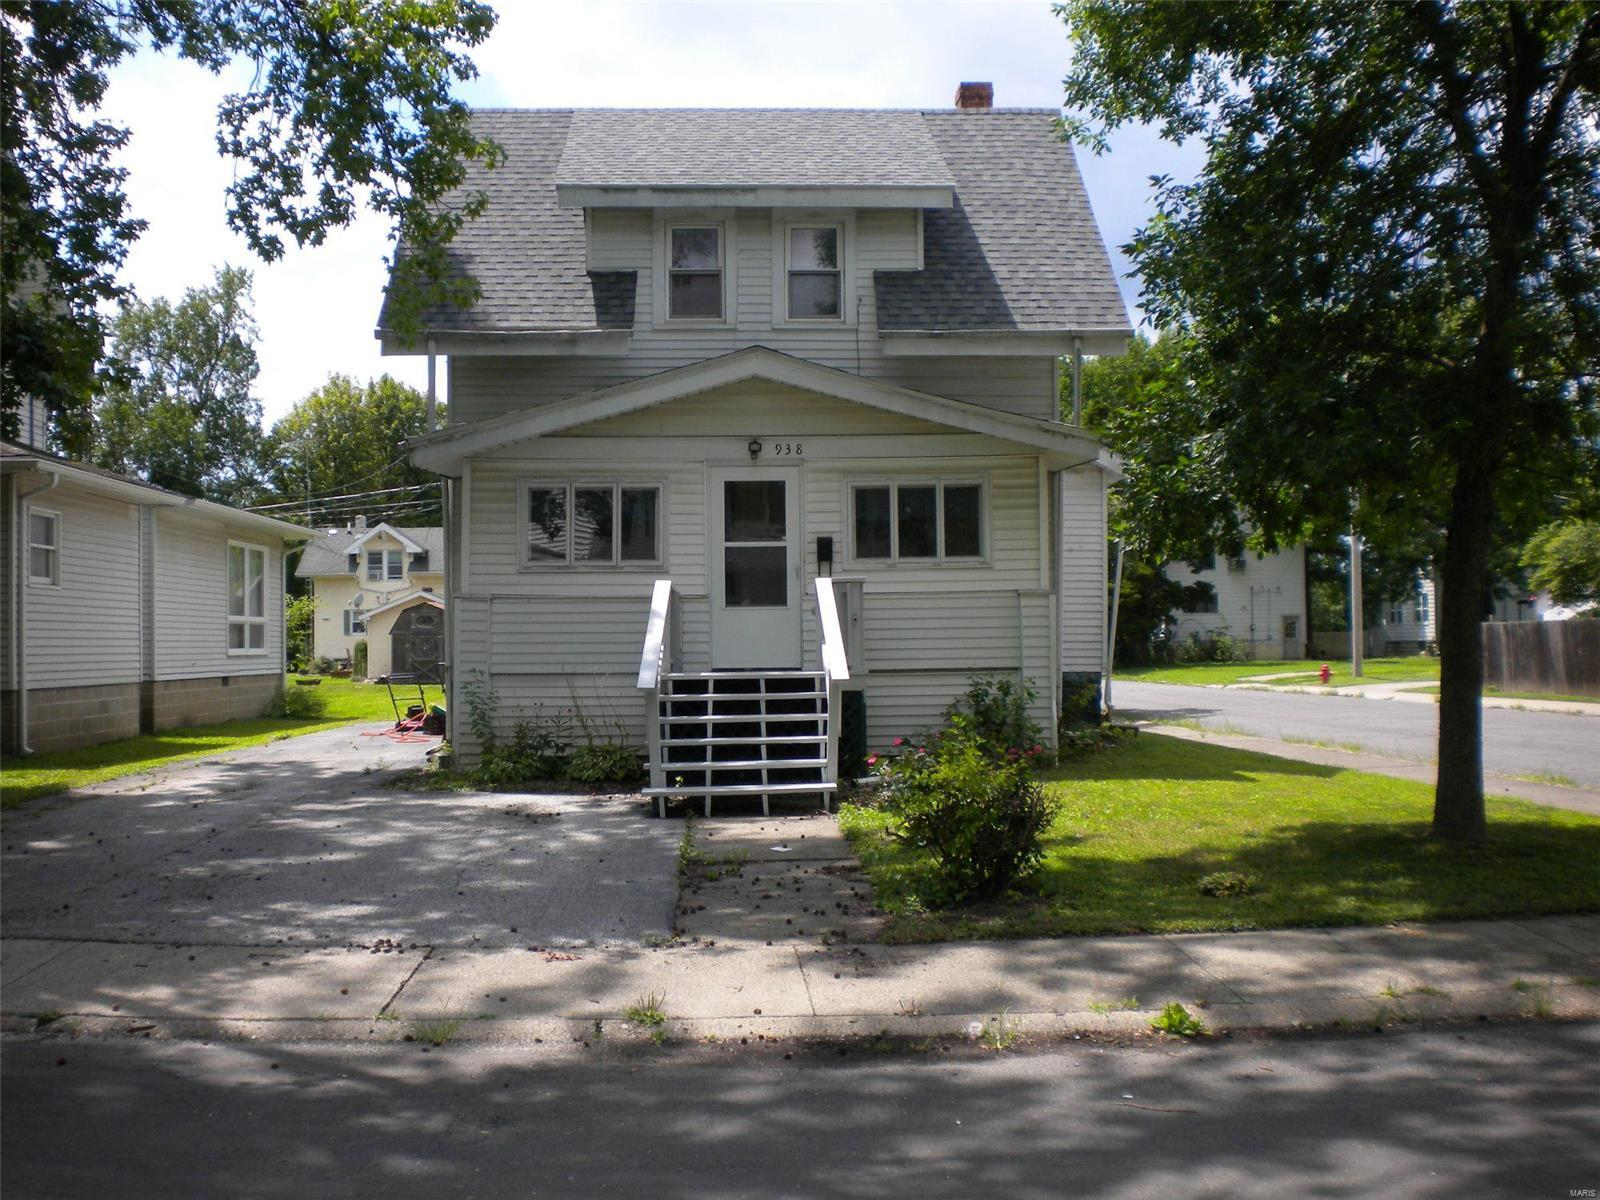 938 N Charles Property Photo - Carlinville, IL real estate listing